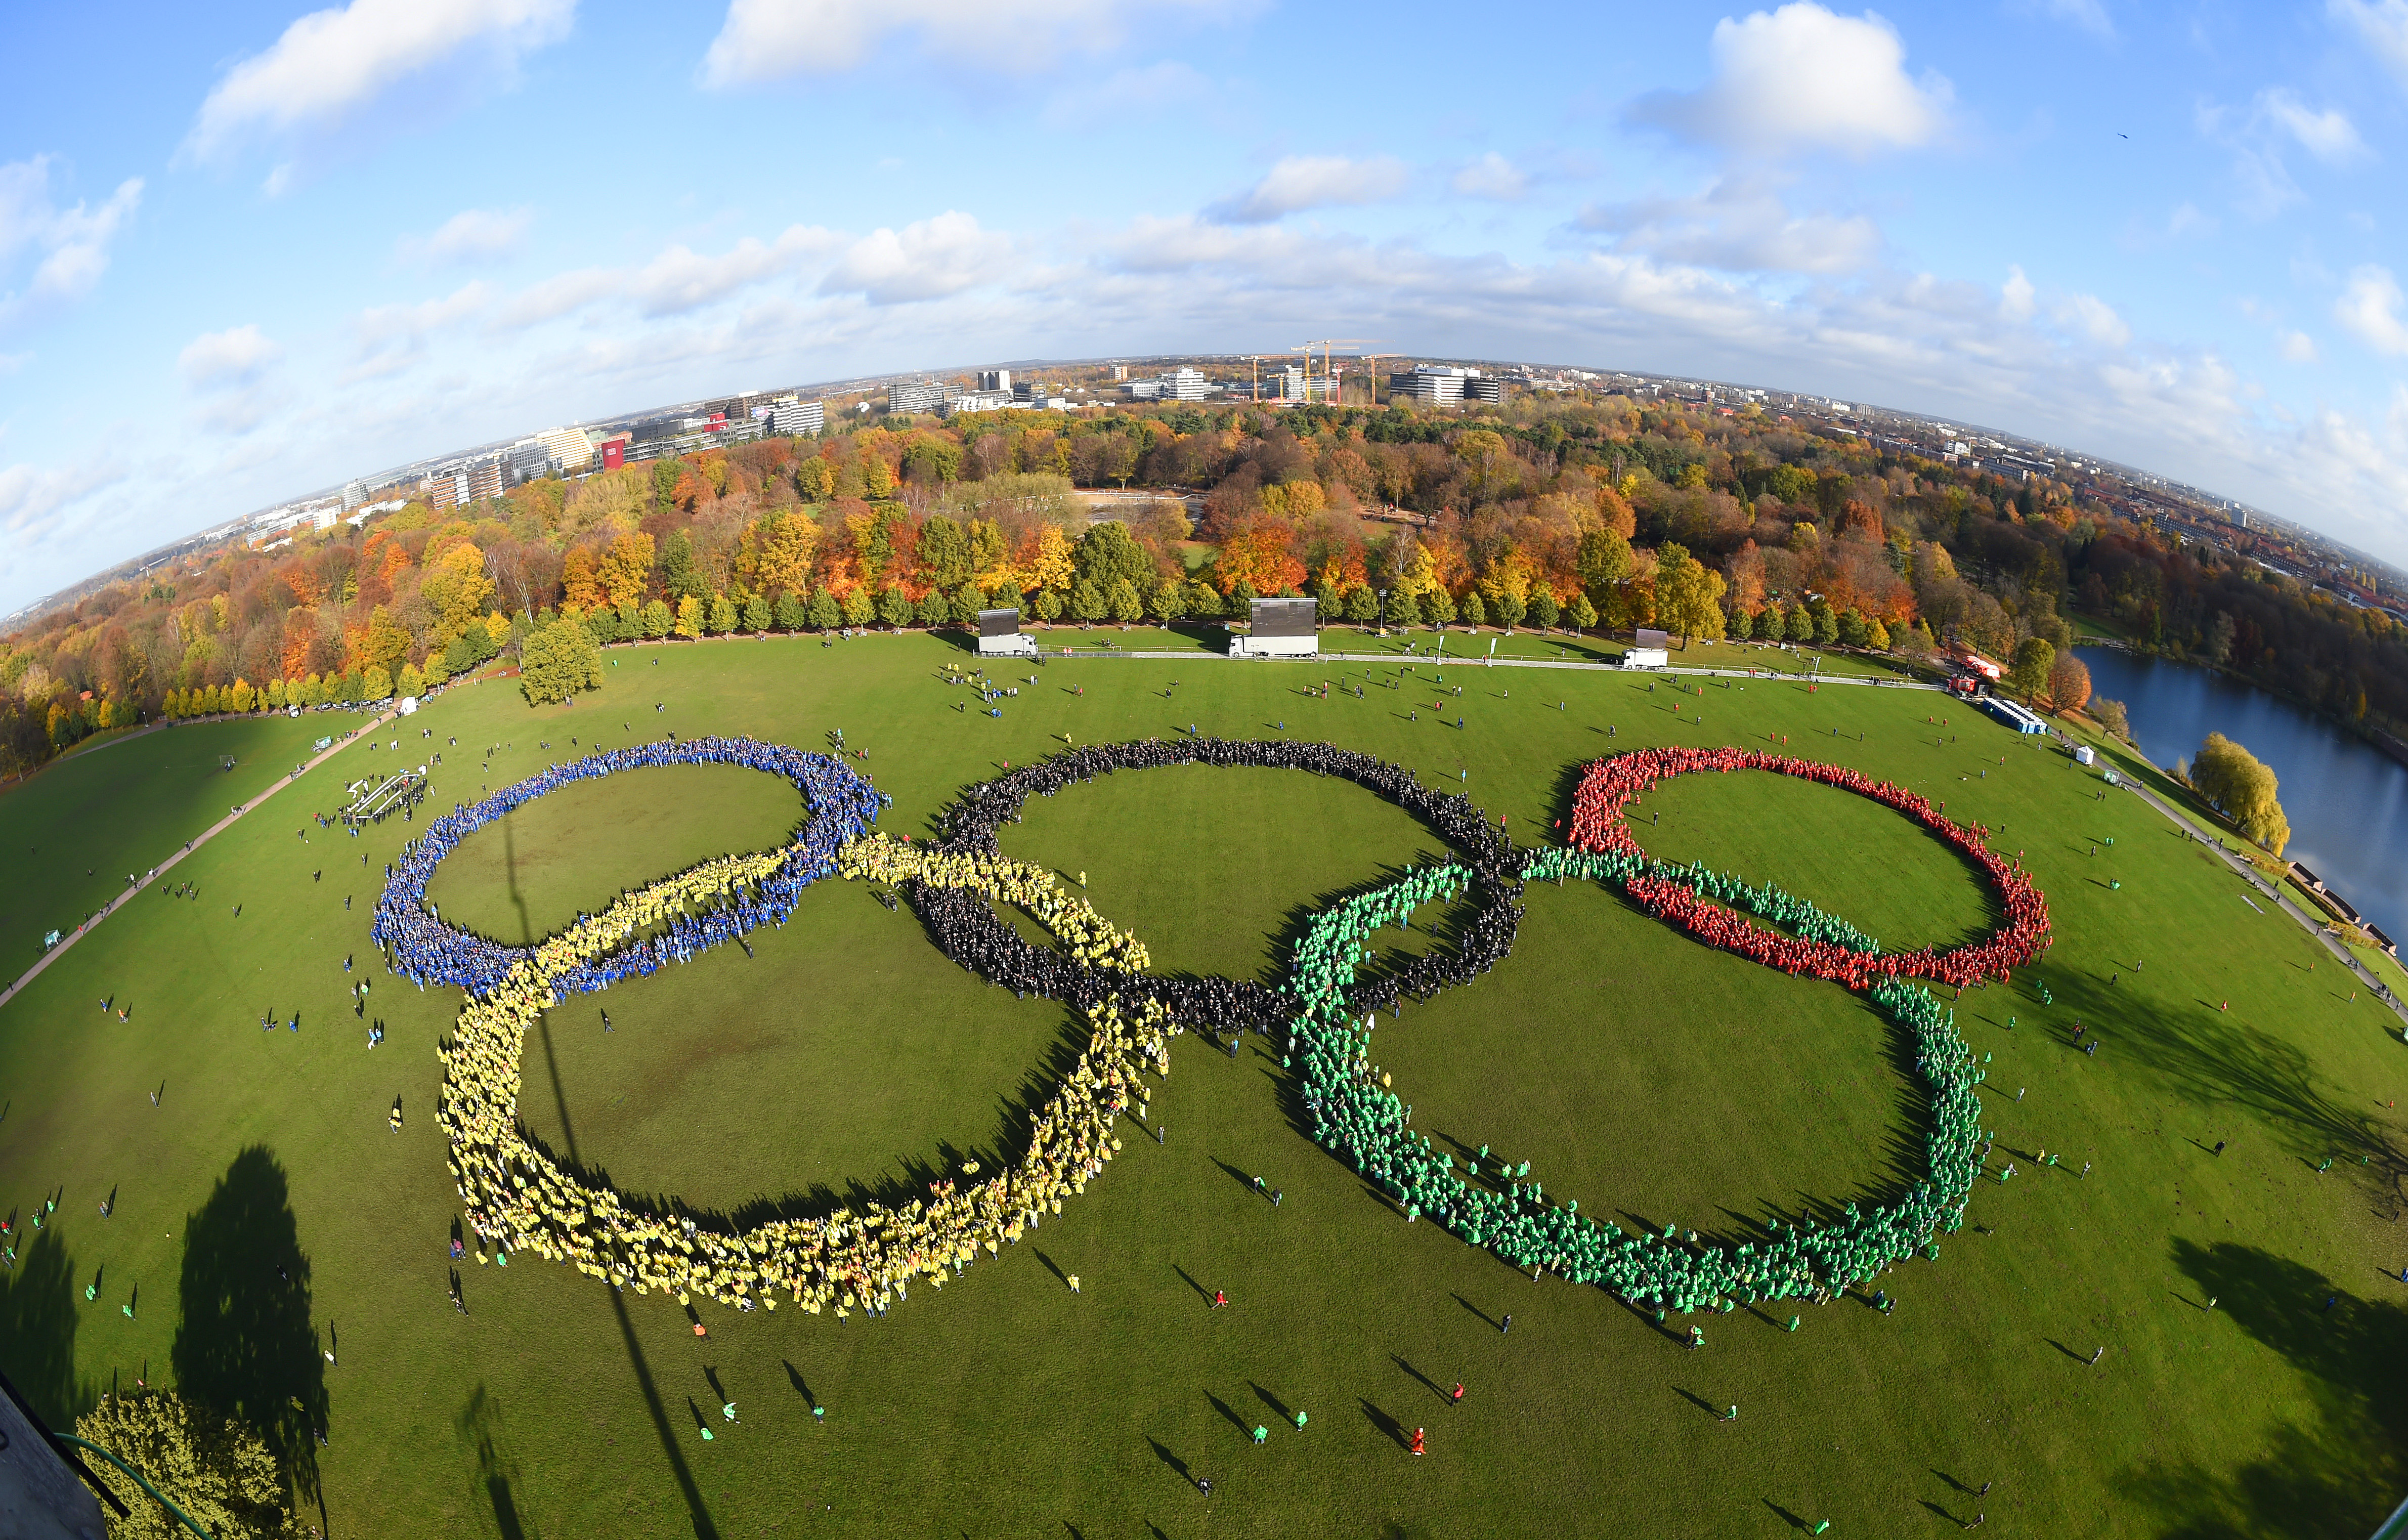 Five rings for hamburg 2024 hamburg sets the tone for the five rings for hamburg 2024 hamburg sets the tone for the olympic games biocorpaavc Images